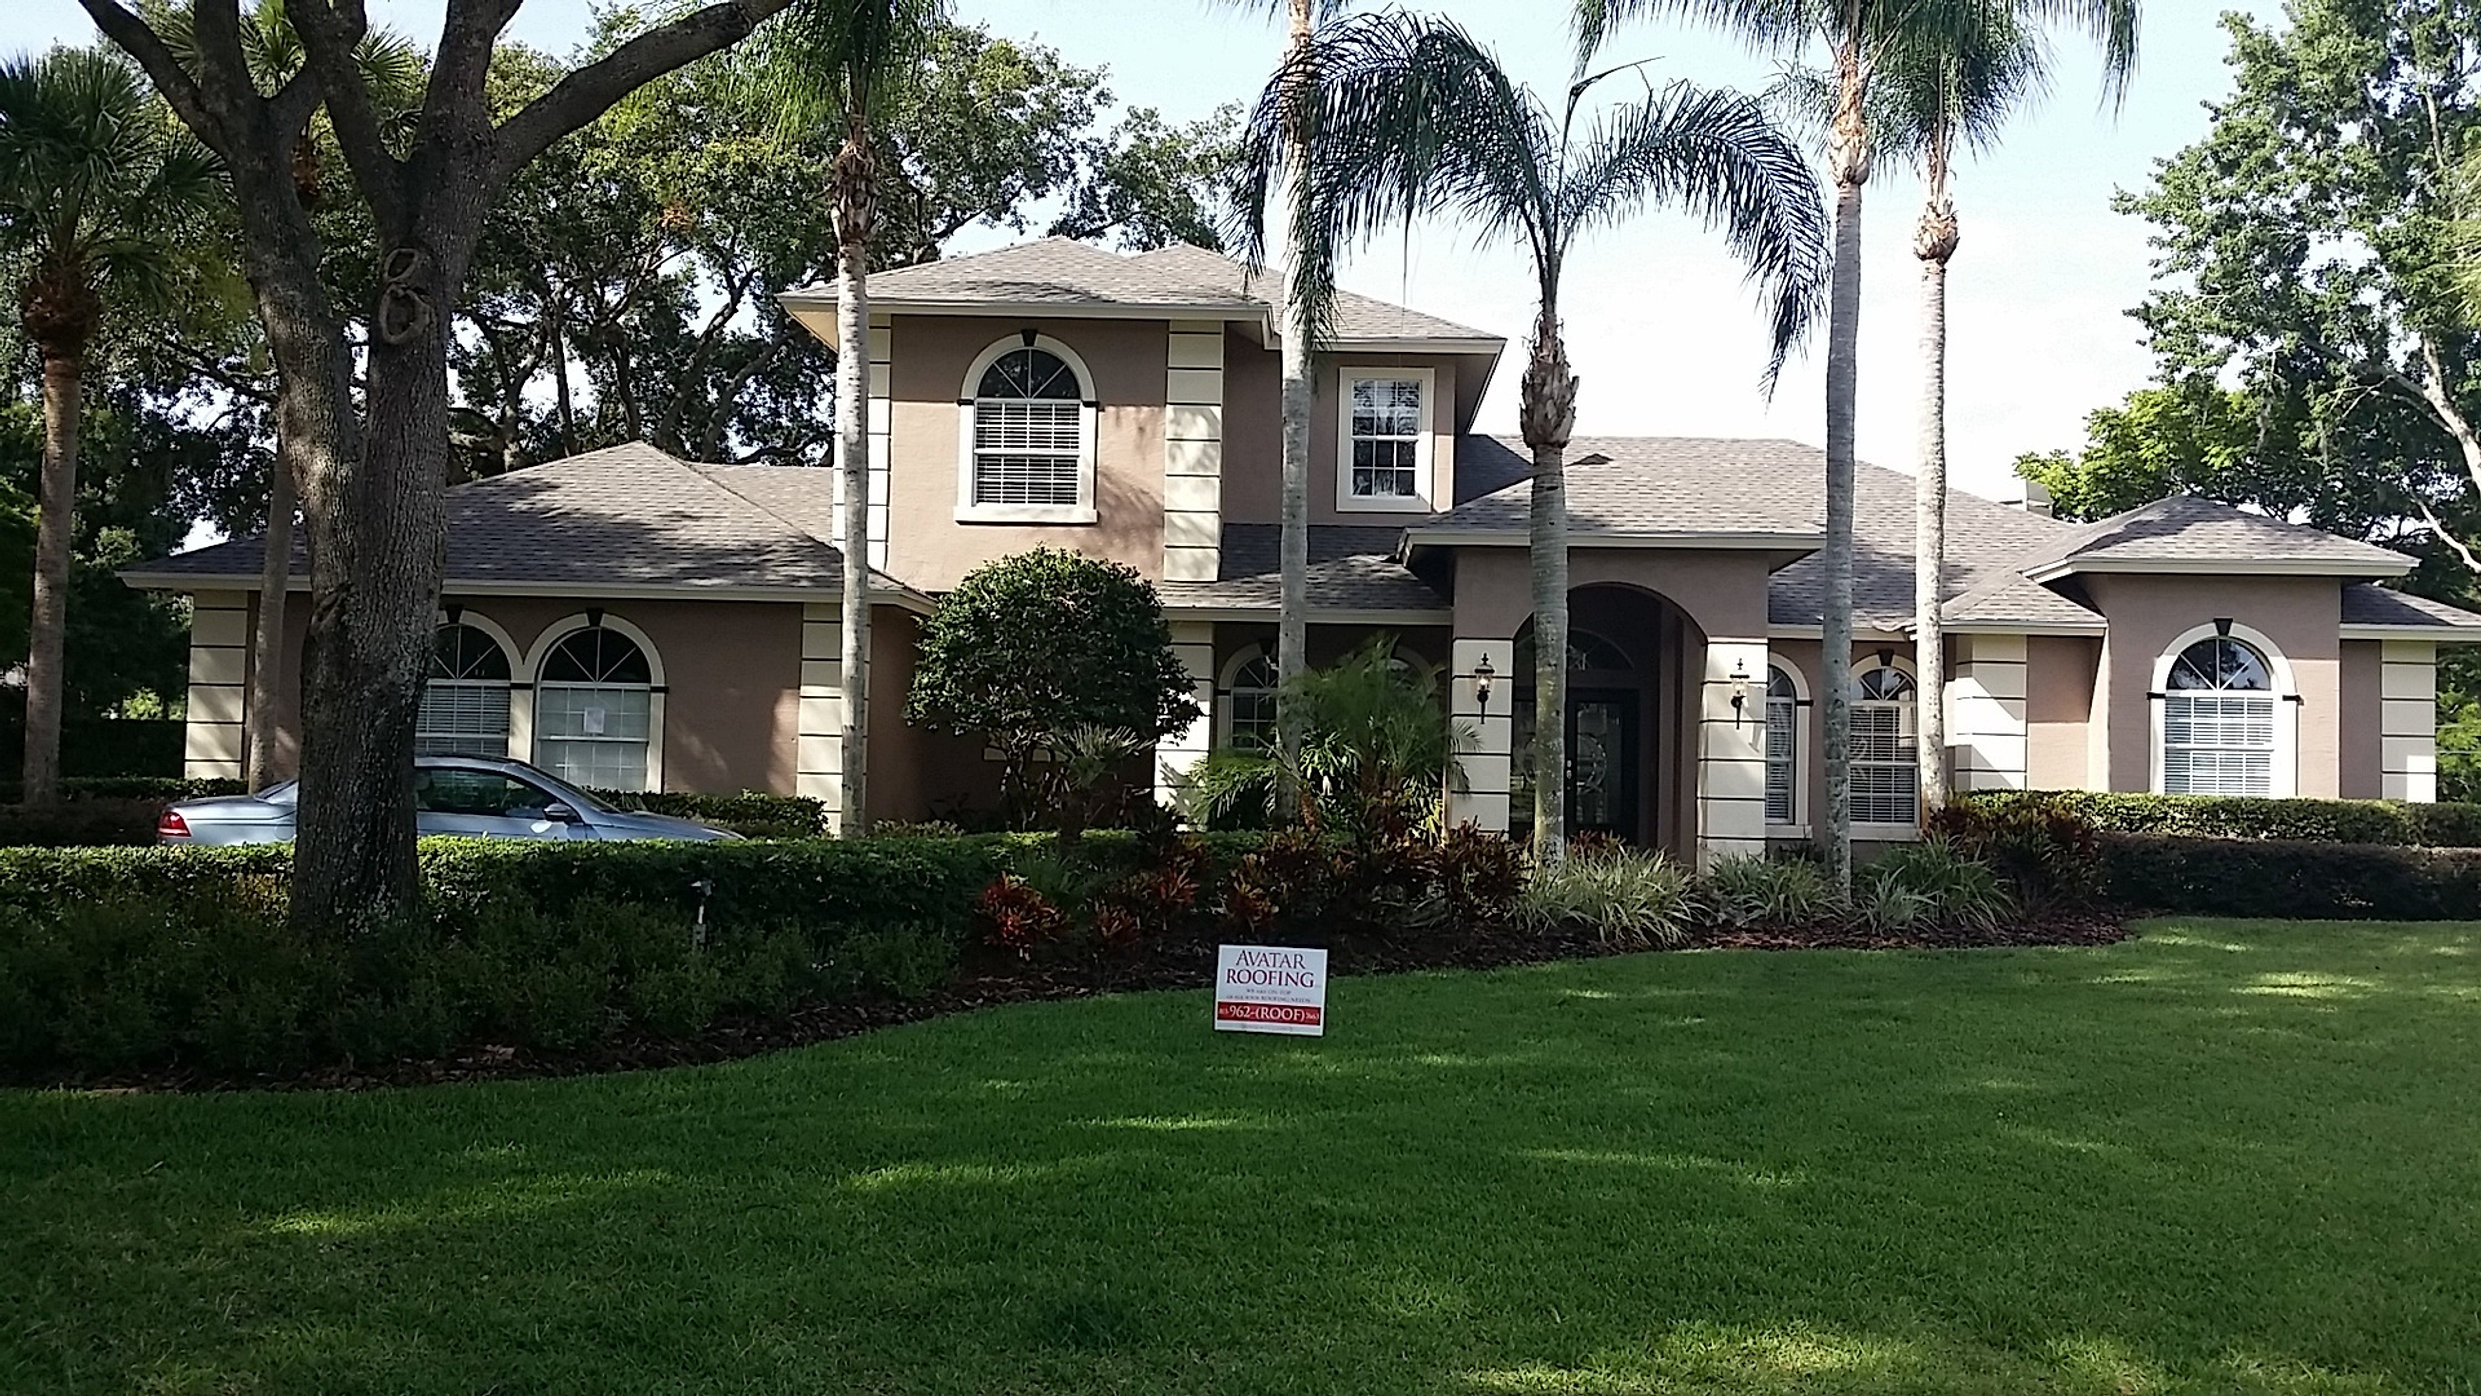 Roofing Tampa Commercial And Residential Roofing Services